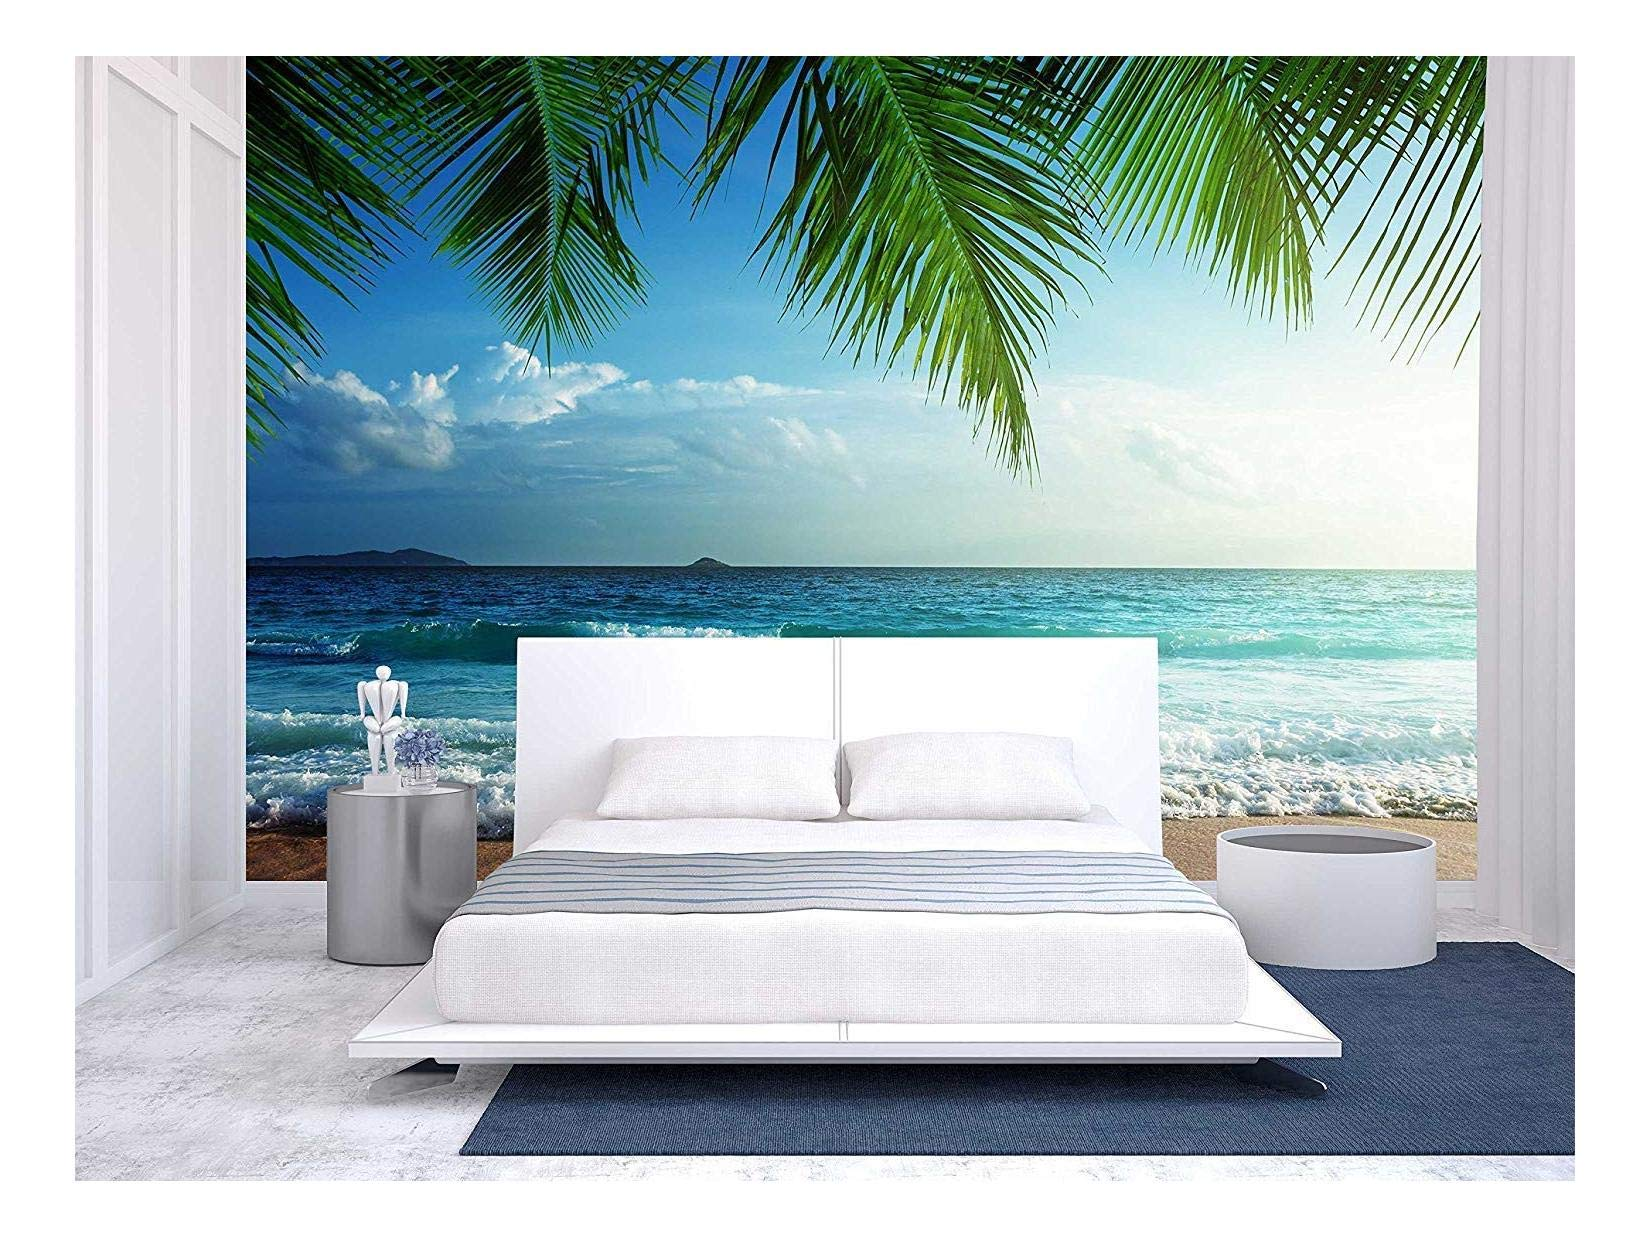 wall26 - Sunset on Seychelles Beach - Removable Wall Mural | Self-Adhesive Large Wallpaper - 66x96 inches by wall26